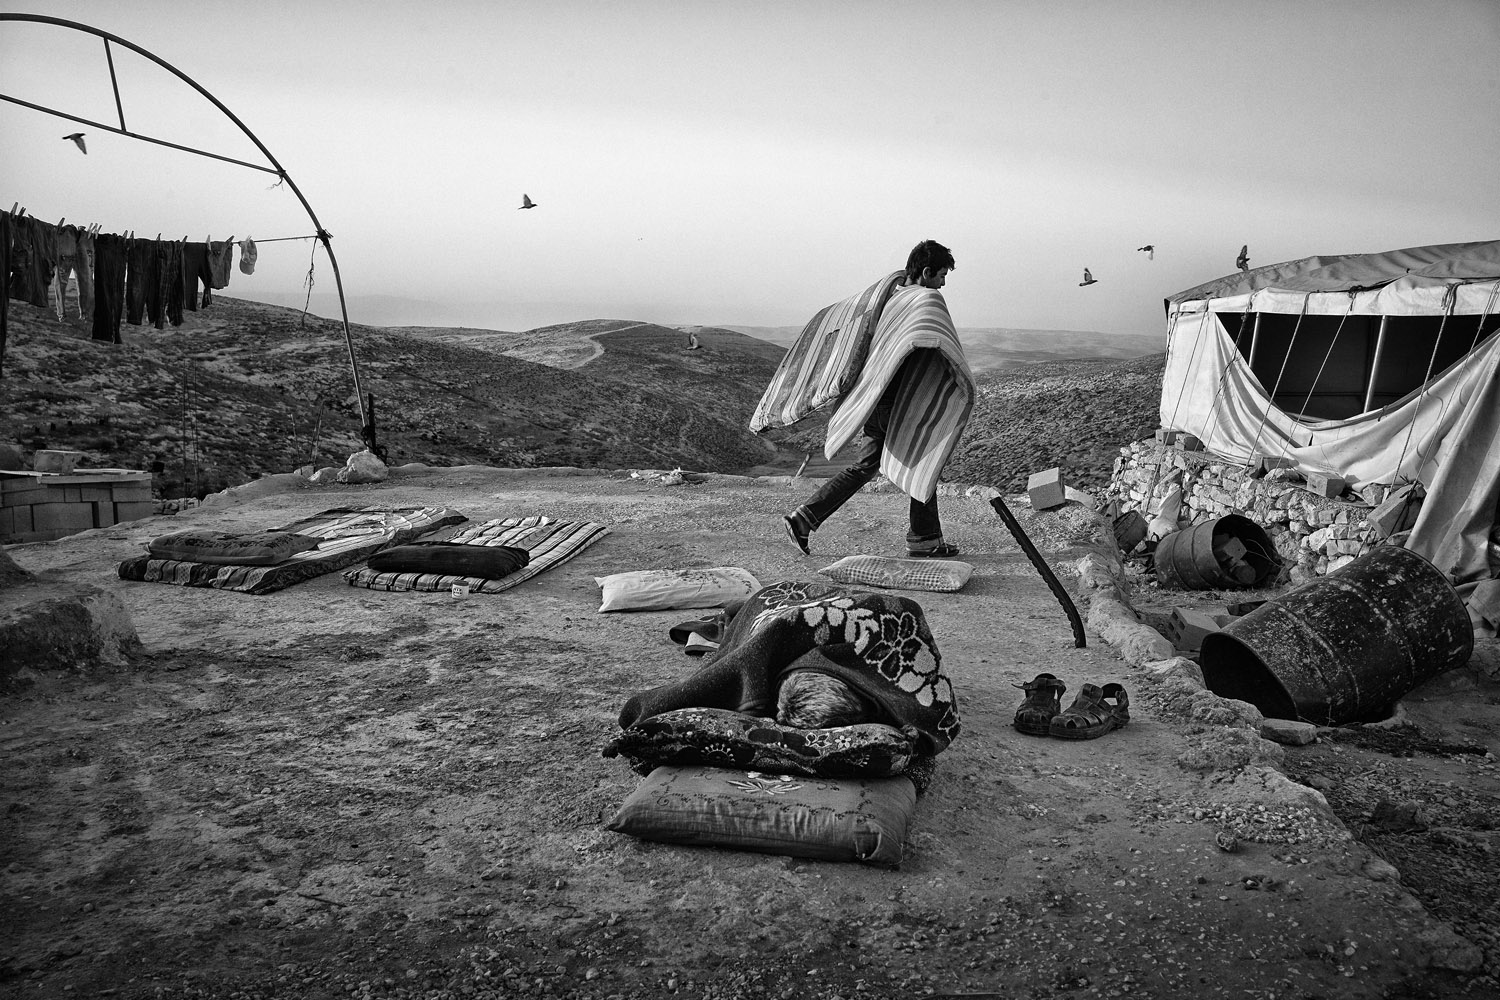 A Palestinian man wakes up in the ruins of his family's West Bank house, destroyed by the Israeli army, in the village of Mufakara in the hills south of Hebron, June 7, 2013.